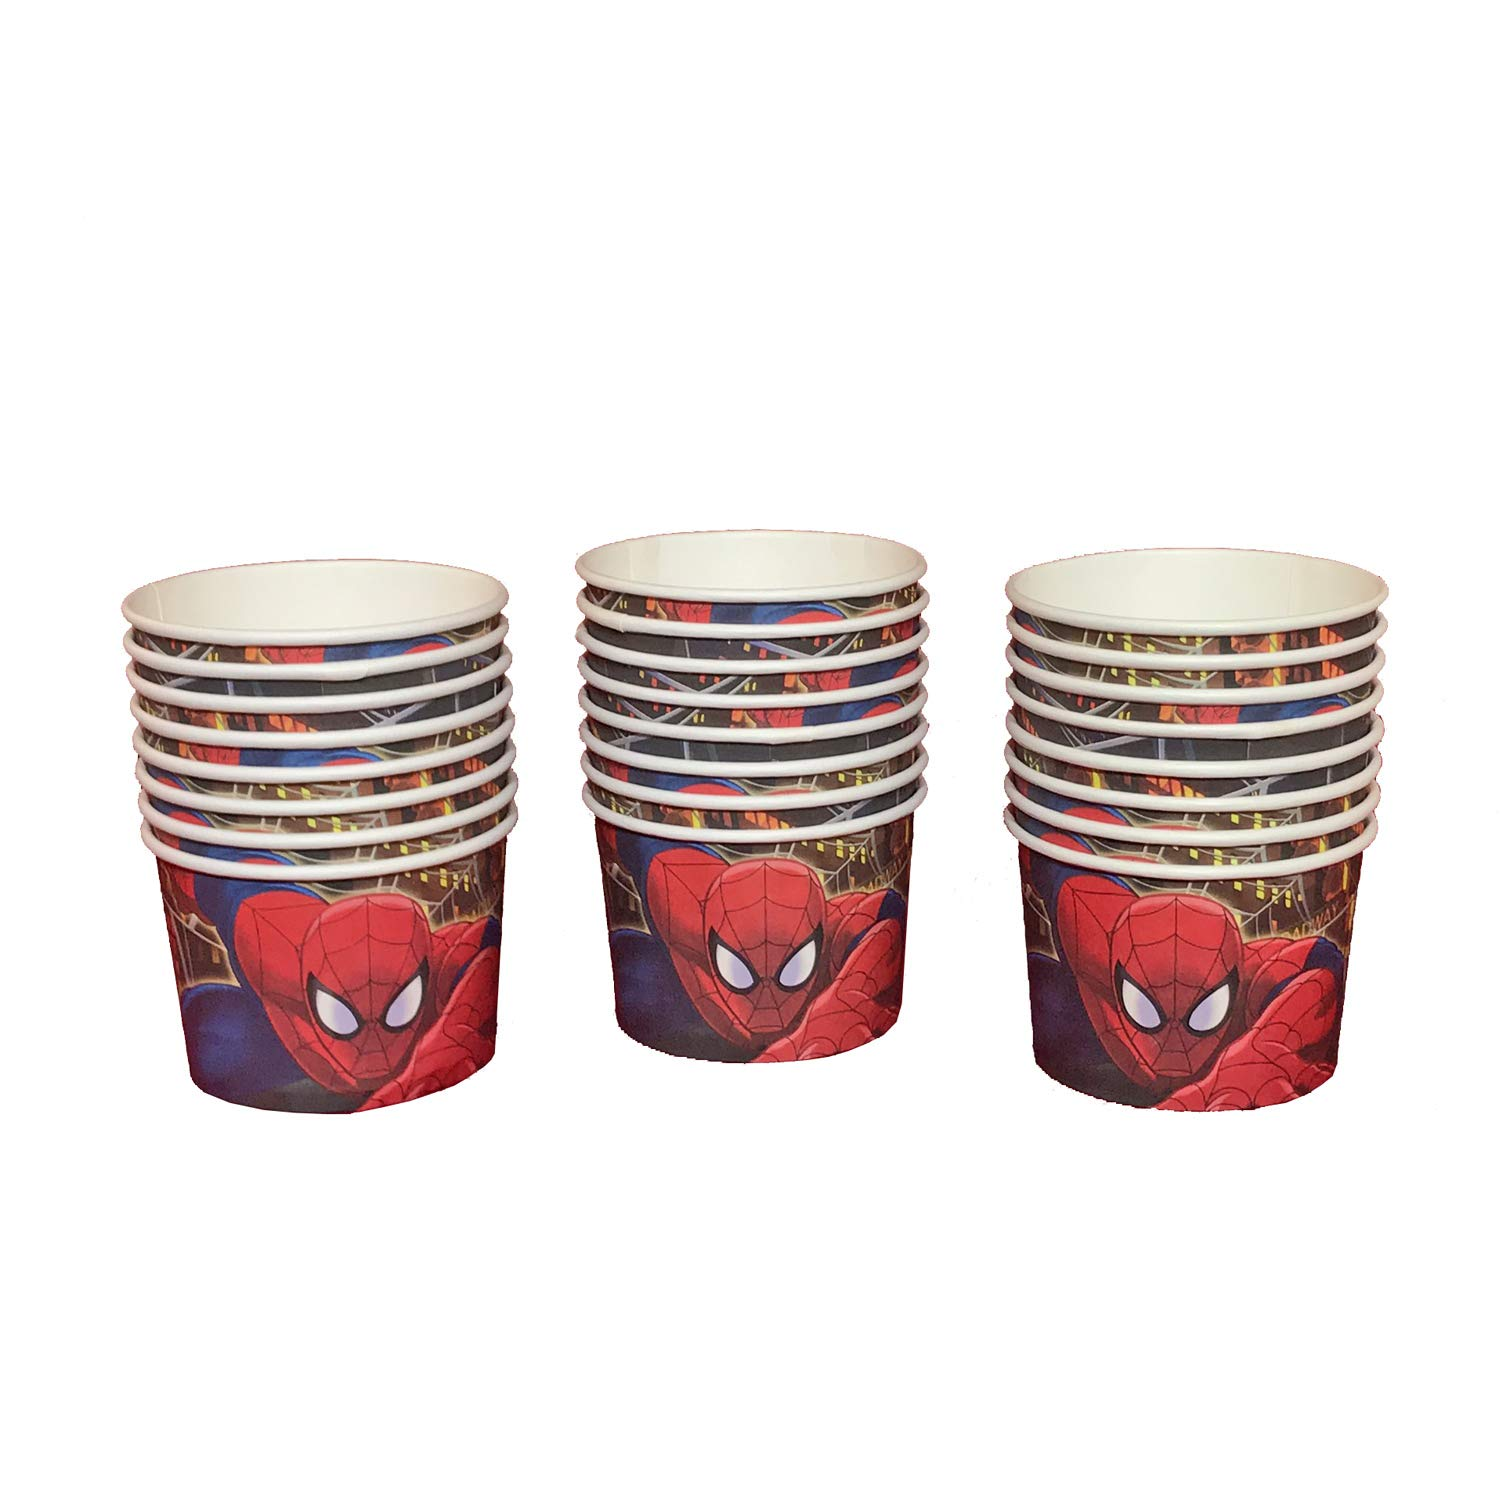 Marvel Ultimate Spider-Man Snack Holders - 24 Count - Paper Treat Cups for Ice Cream, Snacks, Dessert & More